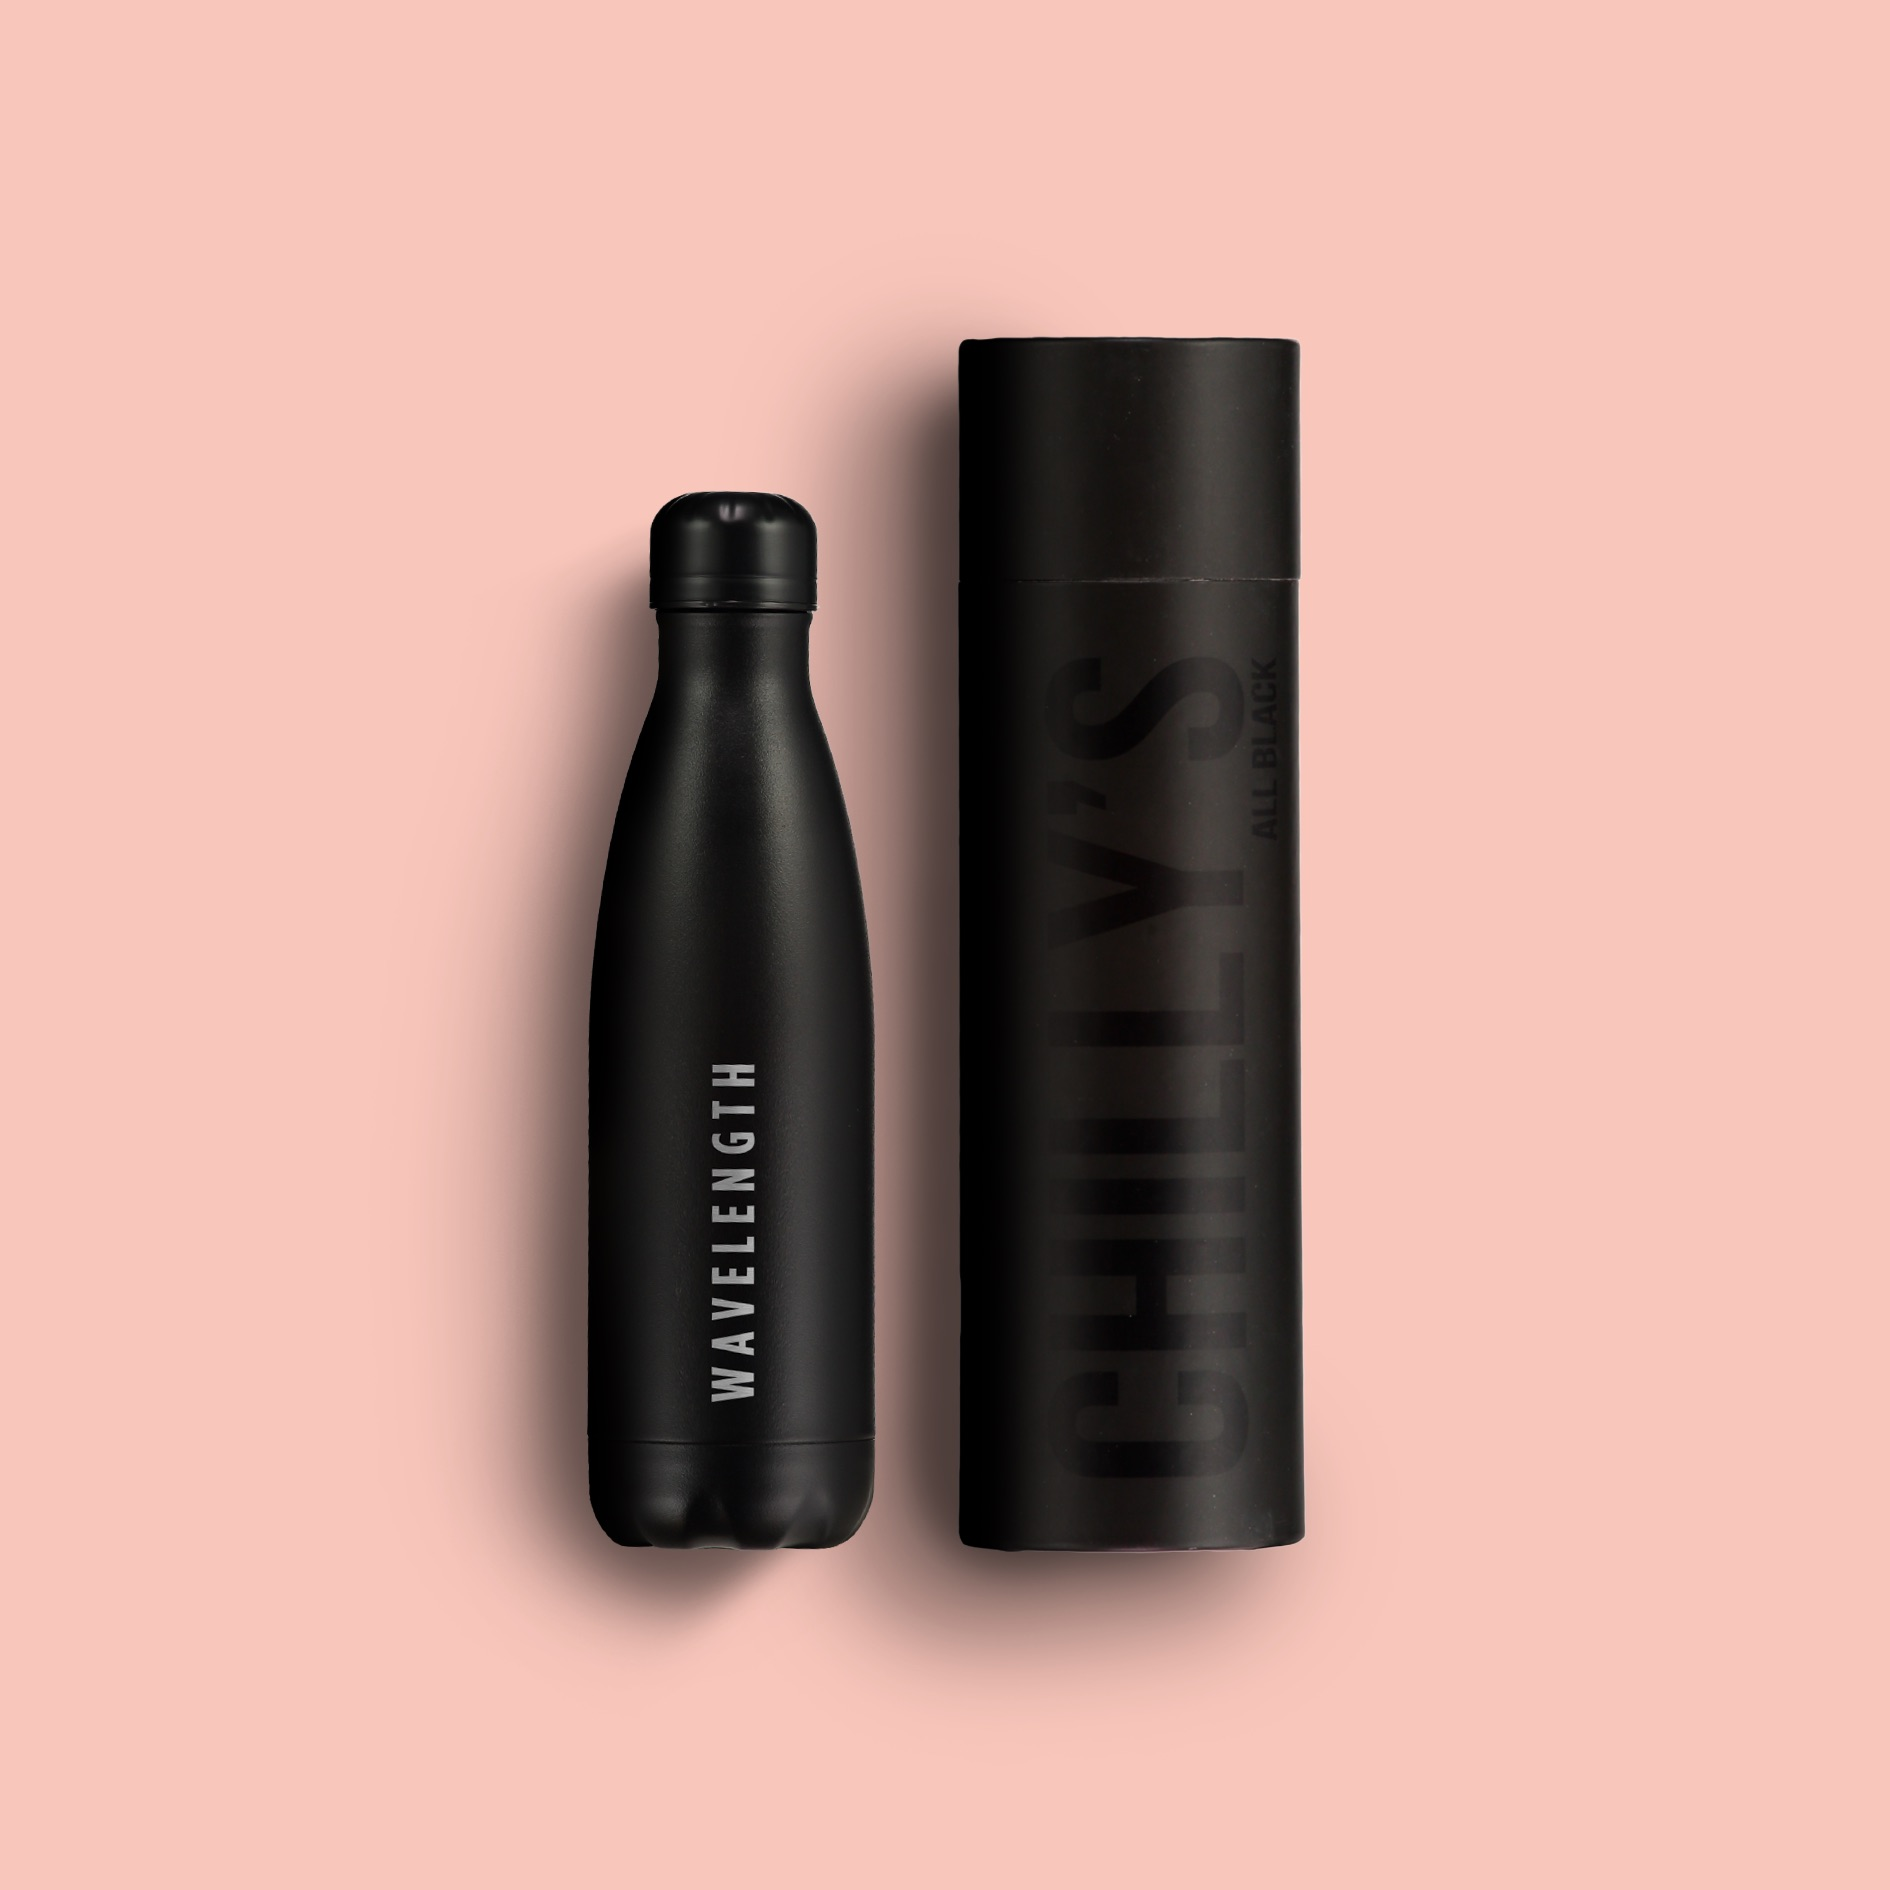 Wavelength x Chilly's reusable water bottle